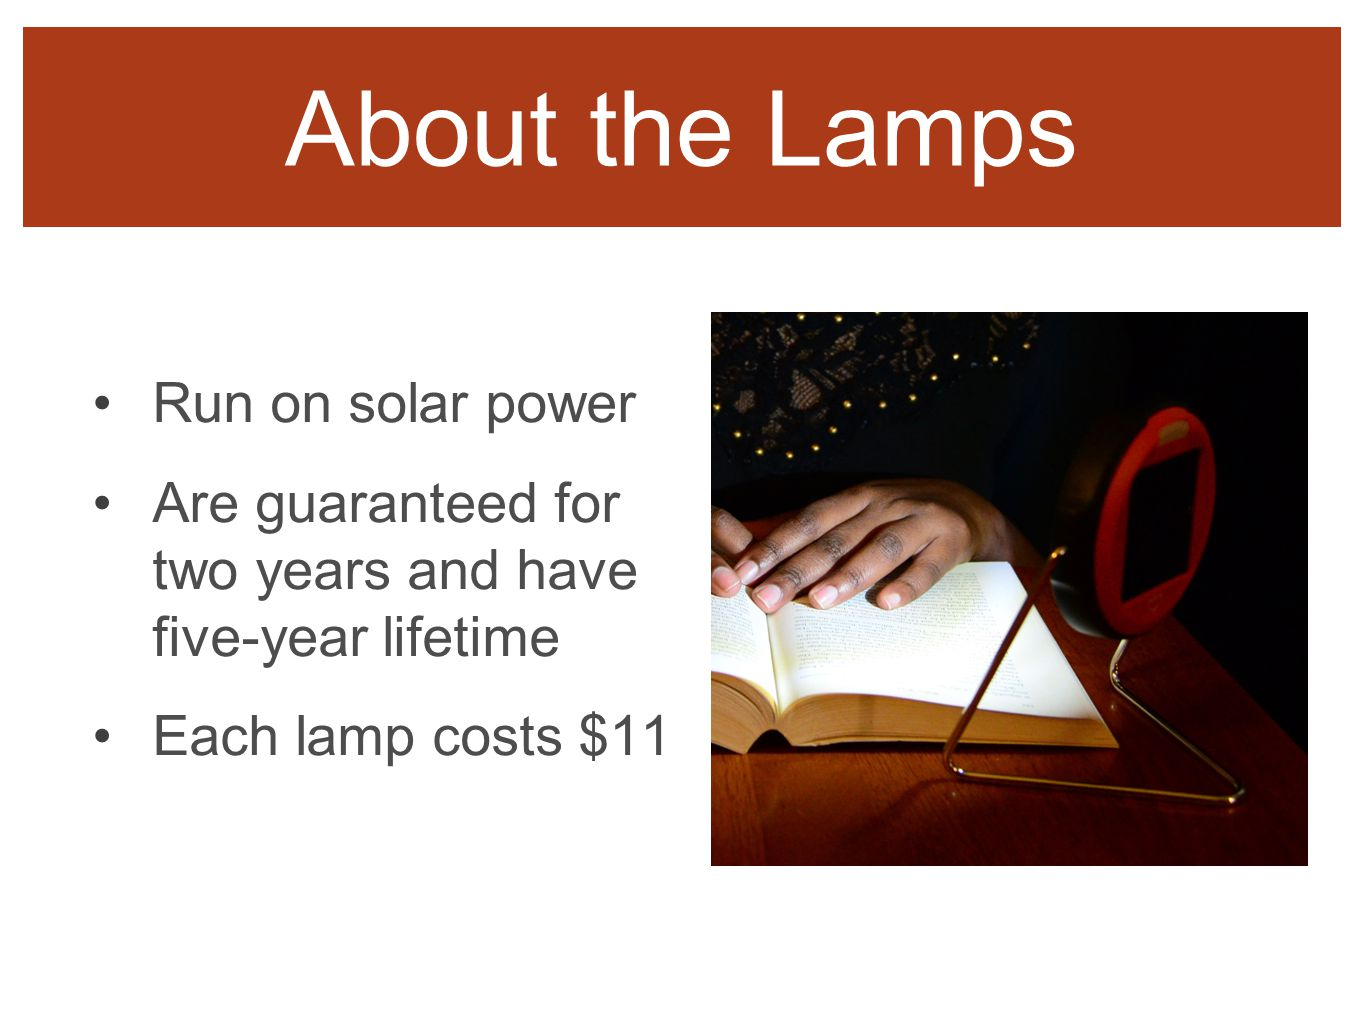 About the Lamps Run on solar power Are guaranteed for two years and have five-year lifetime Each lamp costs $11 About the Lamps